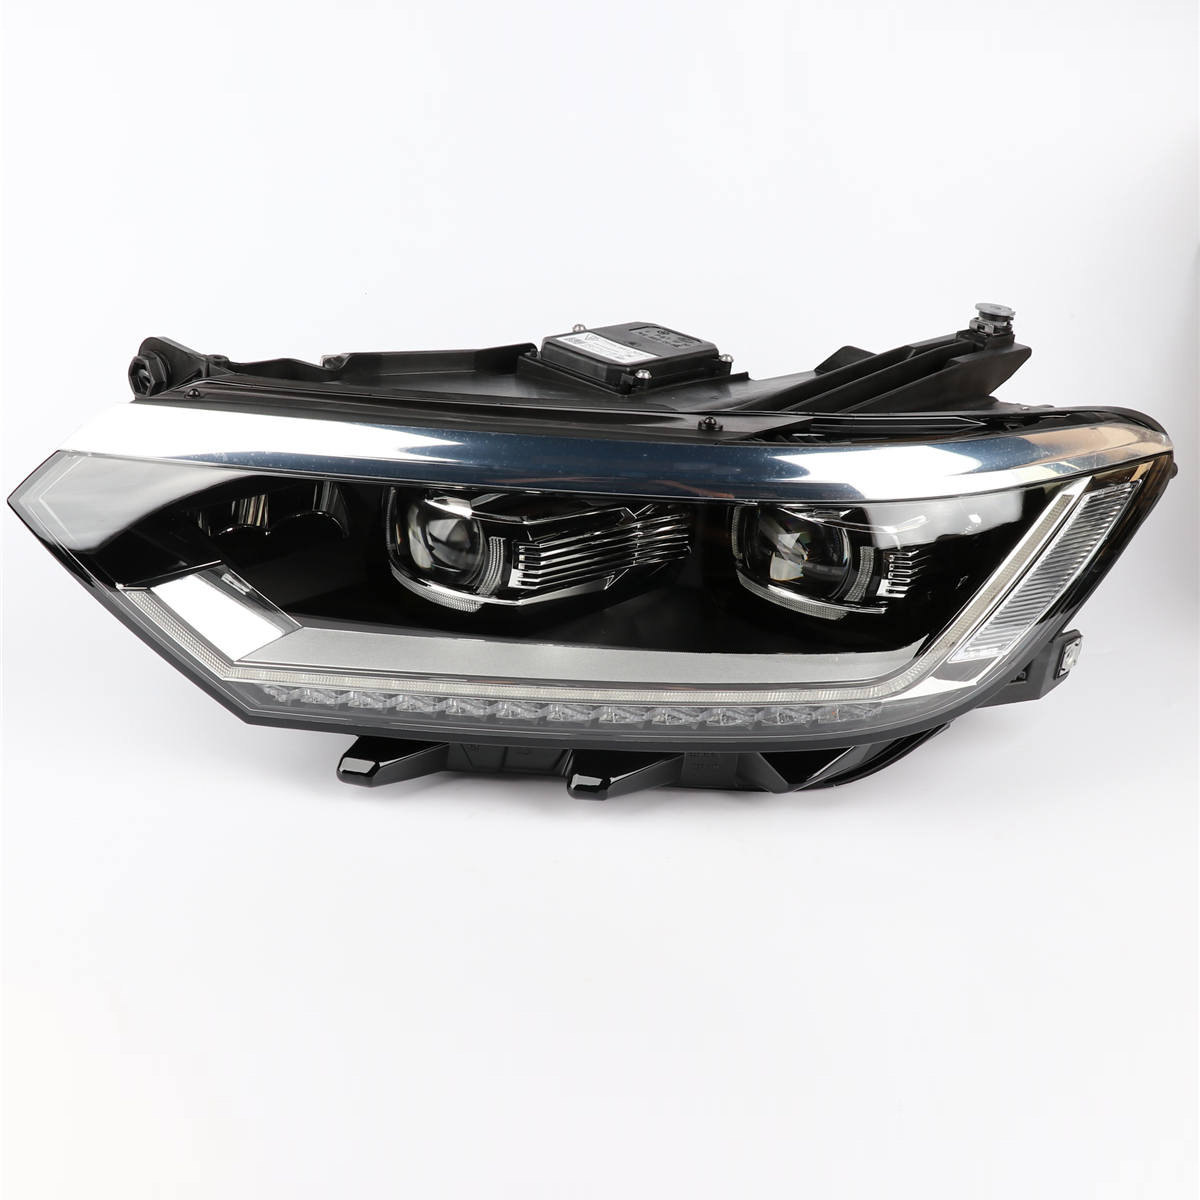 1Pcs Genuine Front Headlight Lamp Head Light Assembly Right Side For VW Passat B8 3GD 941 082 right combination headlight assembly for lifan s4121200